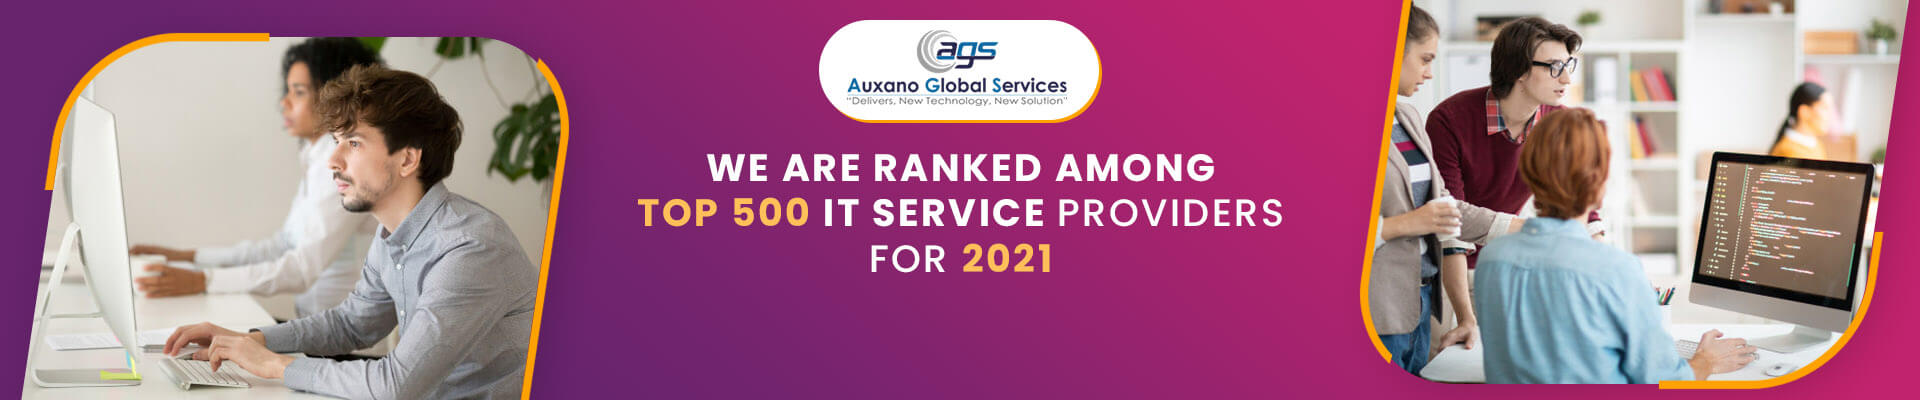 Ranked Top 500 IT Services Providers For 2021 | Auxano Global Services